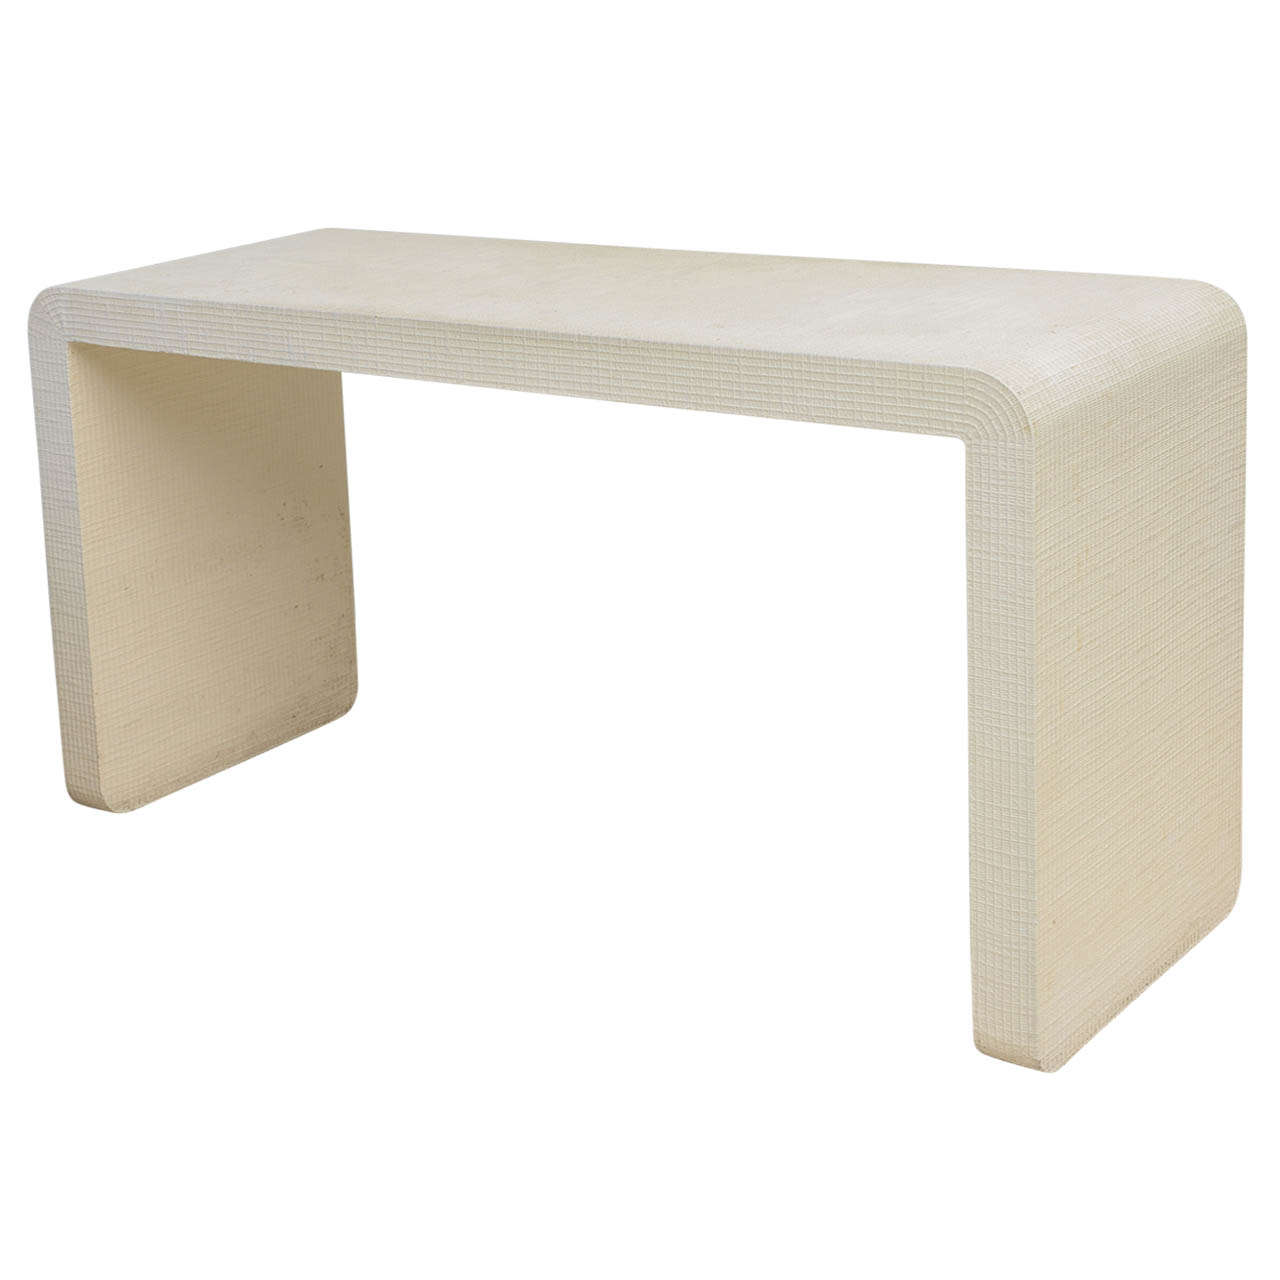 An American Modern White Murano Linen Waterfall Console Table Karl Springer